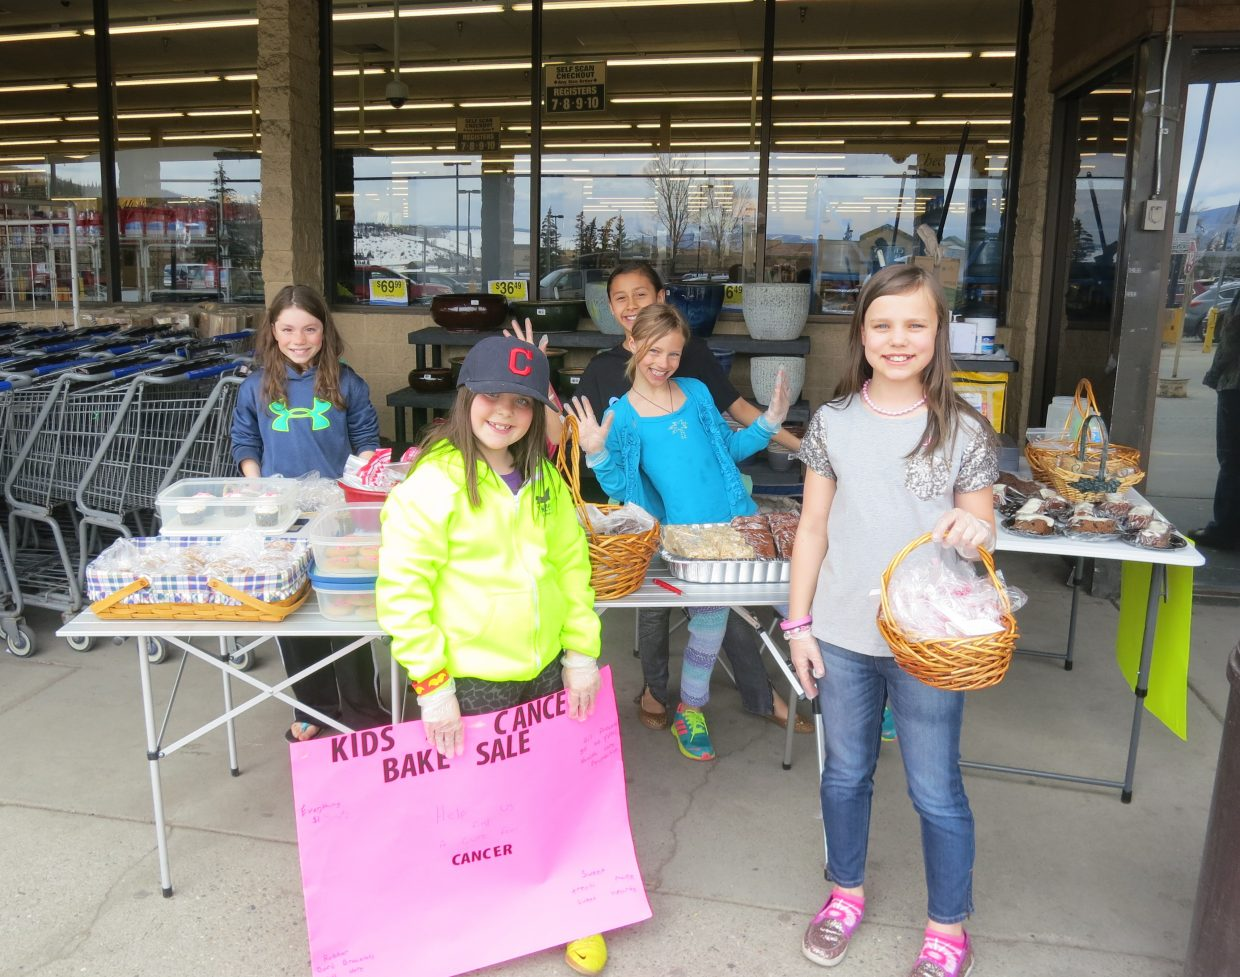 A big thanks to the community for the generous donations to the Kids and Cancer bake sale held April 12 in front of City Market. $400.34 was given to the Healthcare Foundation for the Yampa Valley to the Cancer Care fund. Soda Creek fourth-graders pictured, from left, Abigail Linner, Caroline Gilchrist, Adalia George, Freja Tynelius-Deering and Katherine Brunk. Submitted by: Laurel Linner